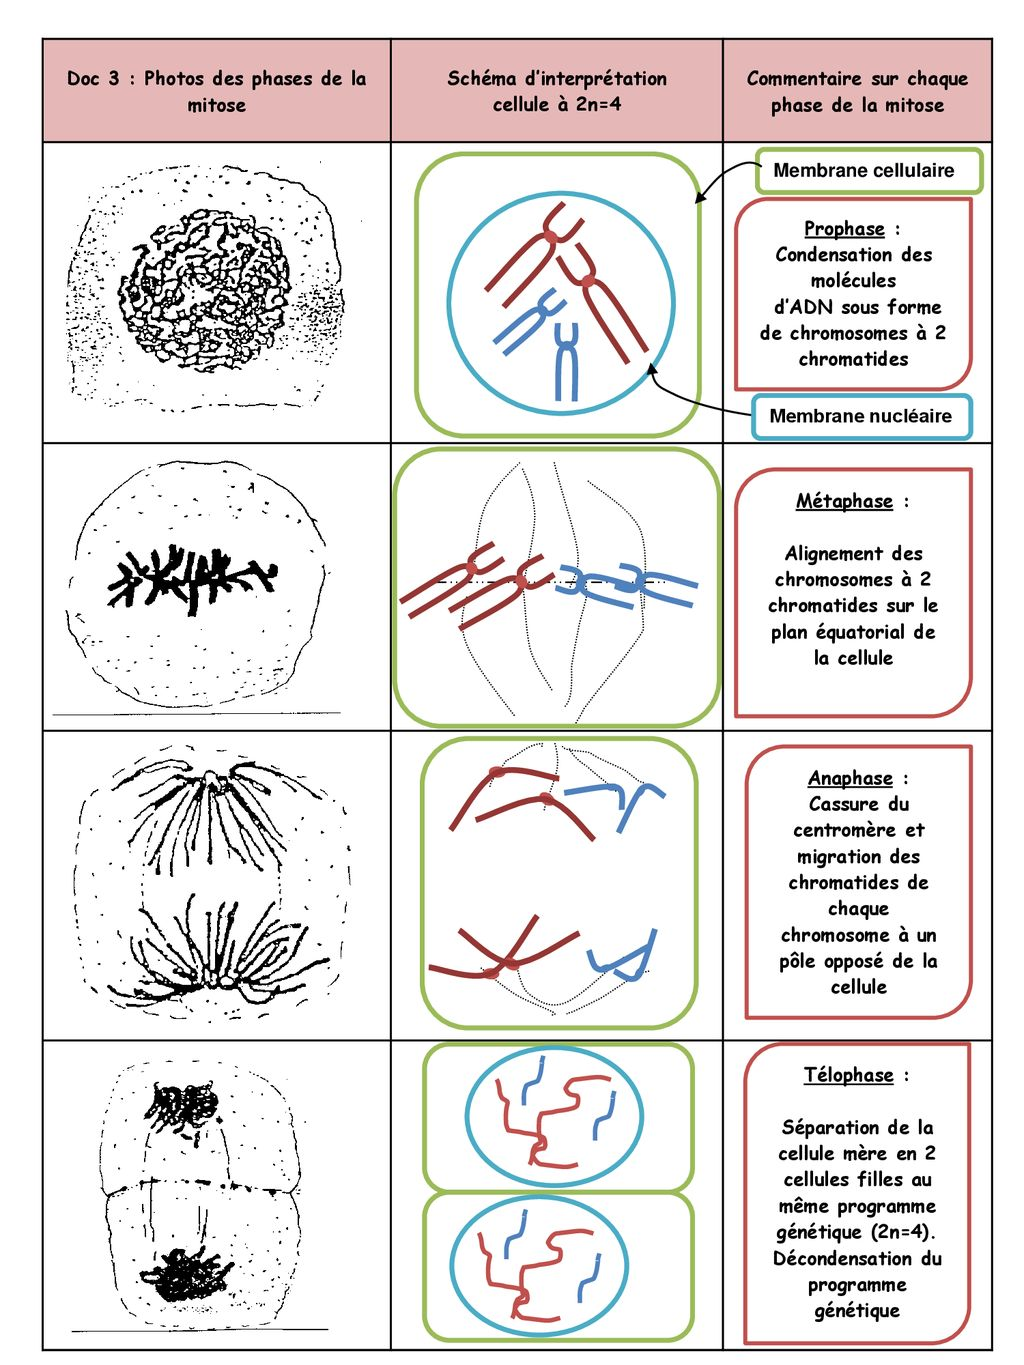 Doc 3 : Photos des phases de la mitose